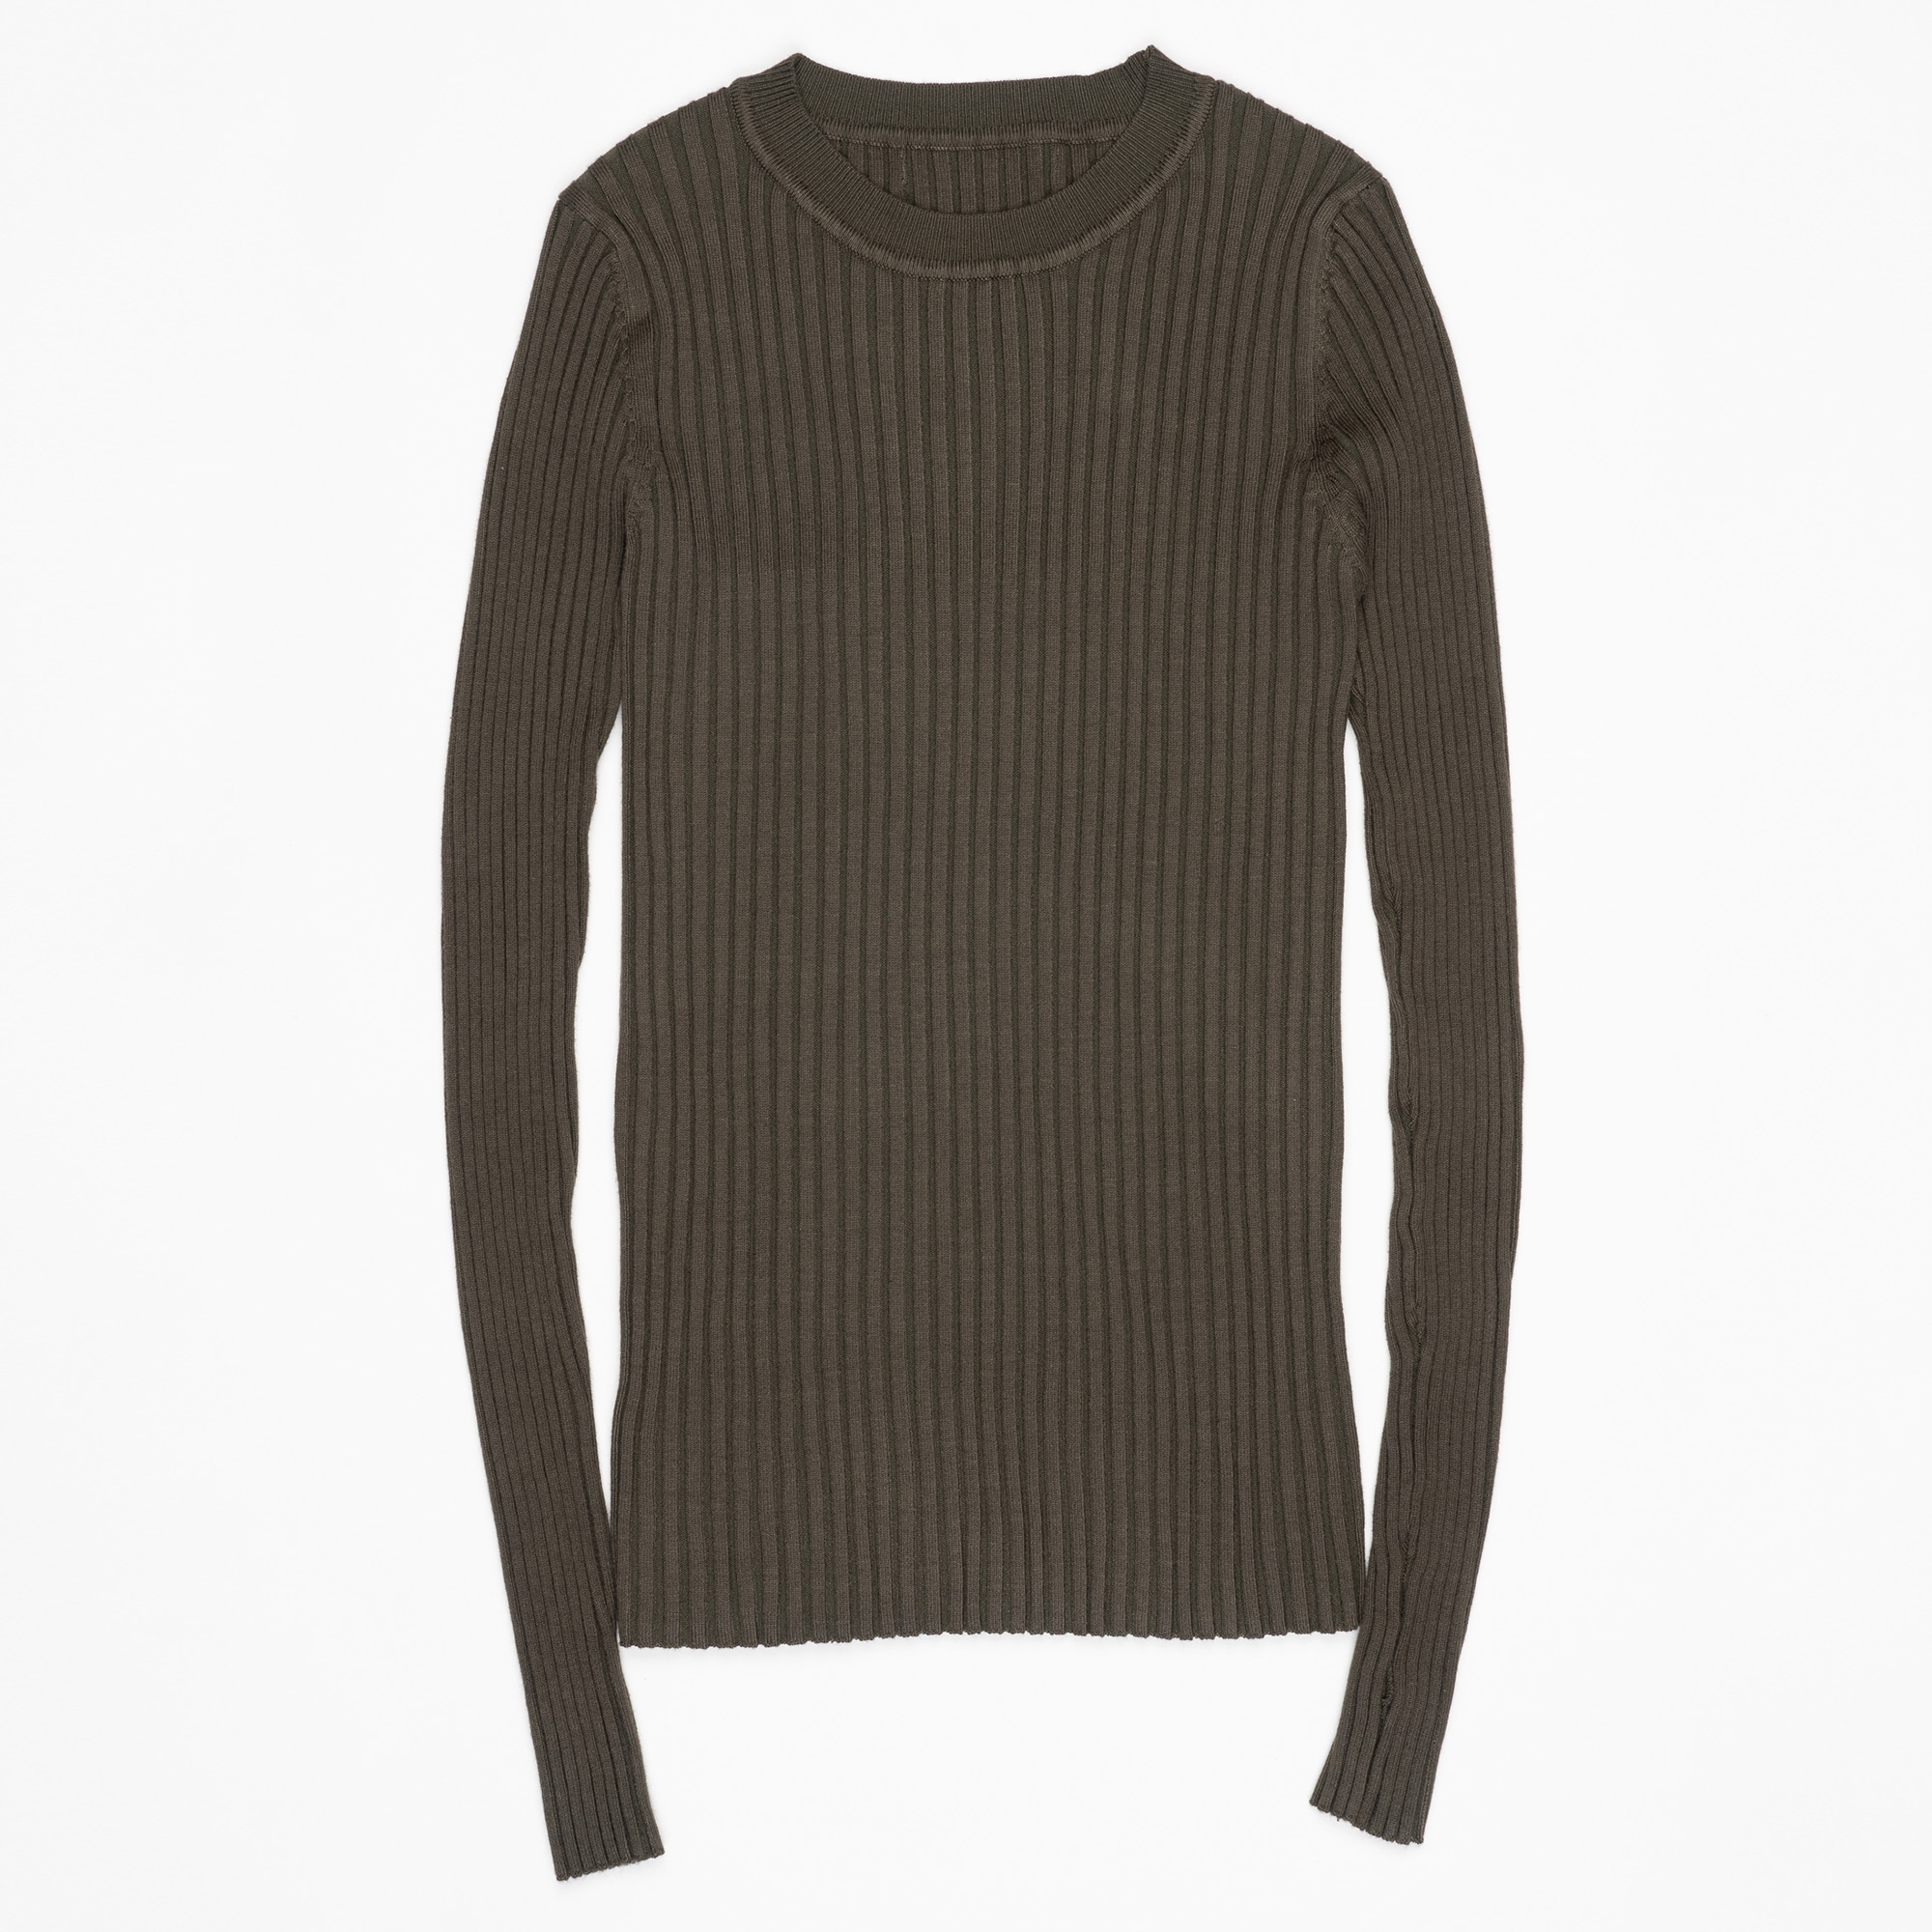 Women Sweater Pullover Basic Ribbed Sweaters Cotton Tops Knitted Solid Crew Neck With Thumb Hole 30